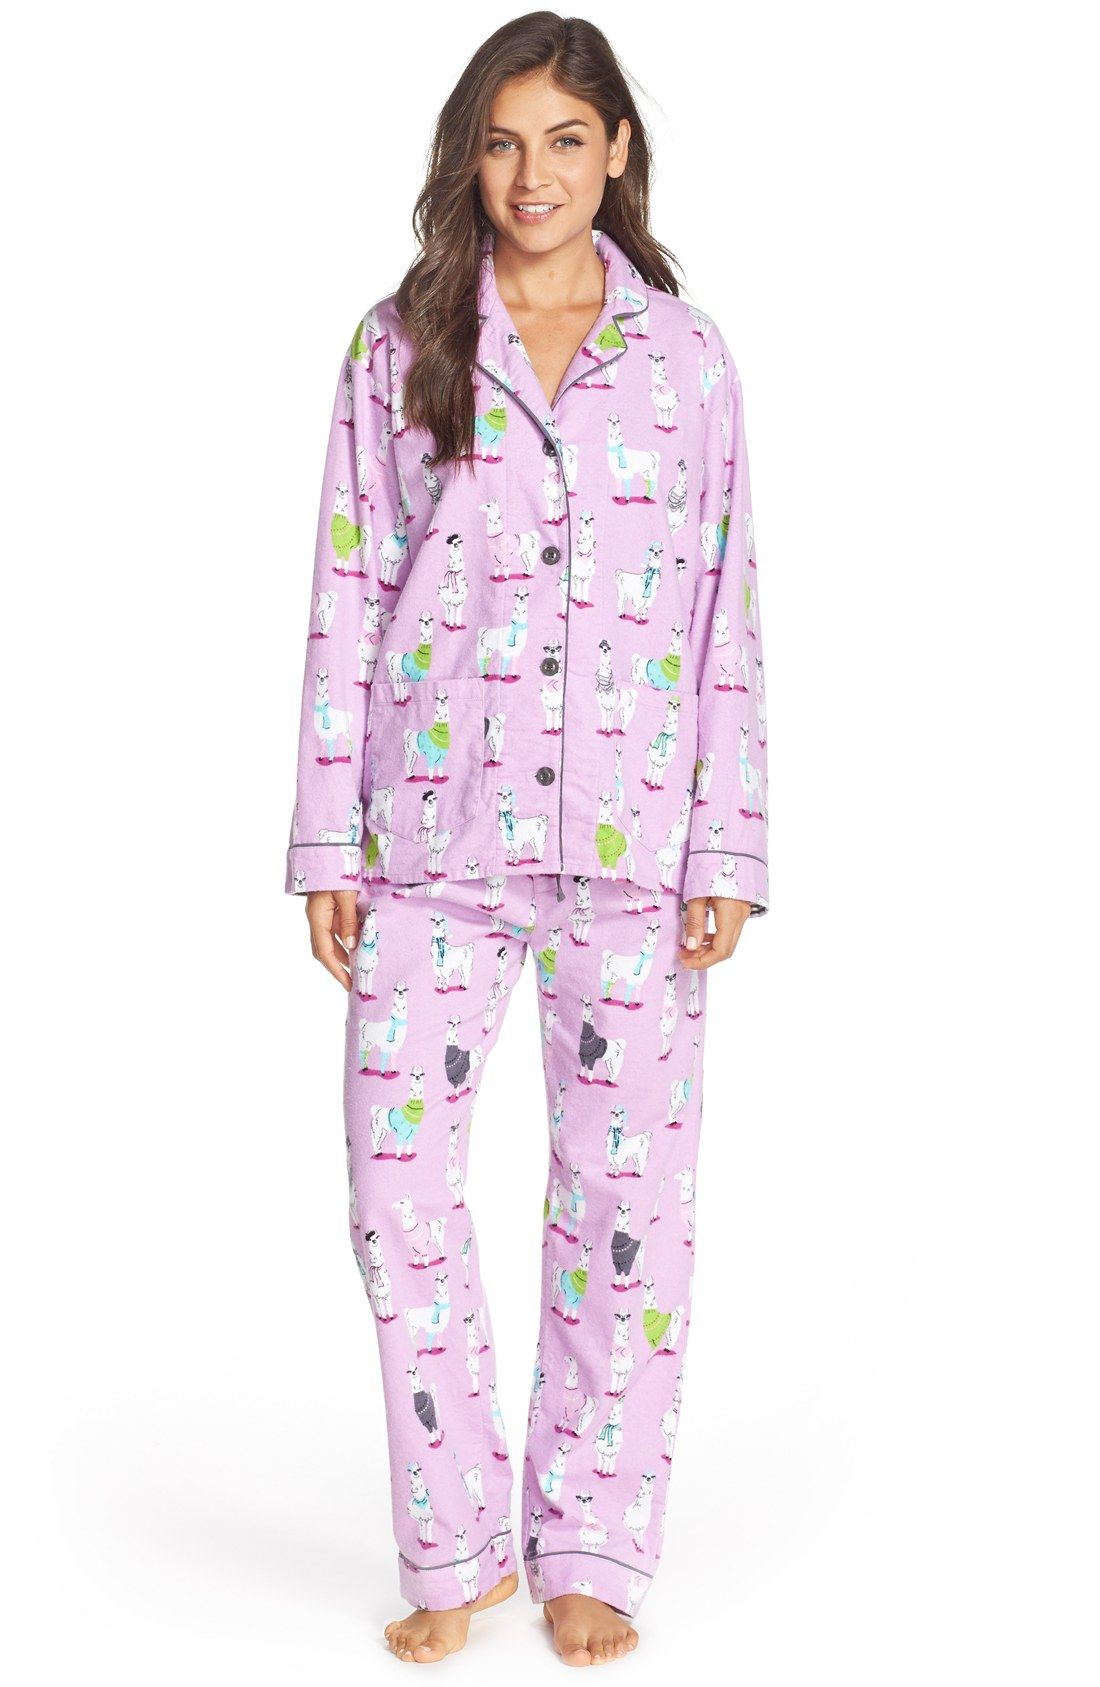 Women's PJ Salvage Print Flannel Pajamas | Flannels, Pajamas and ...